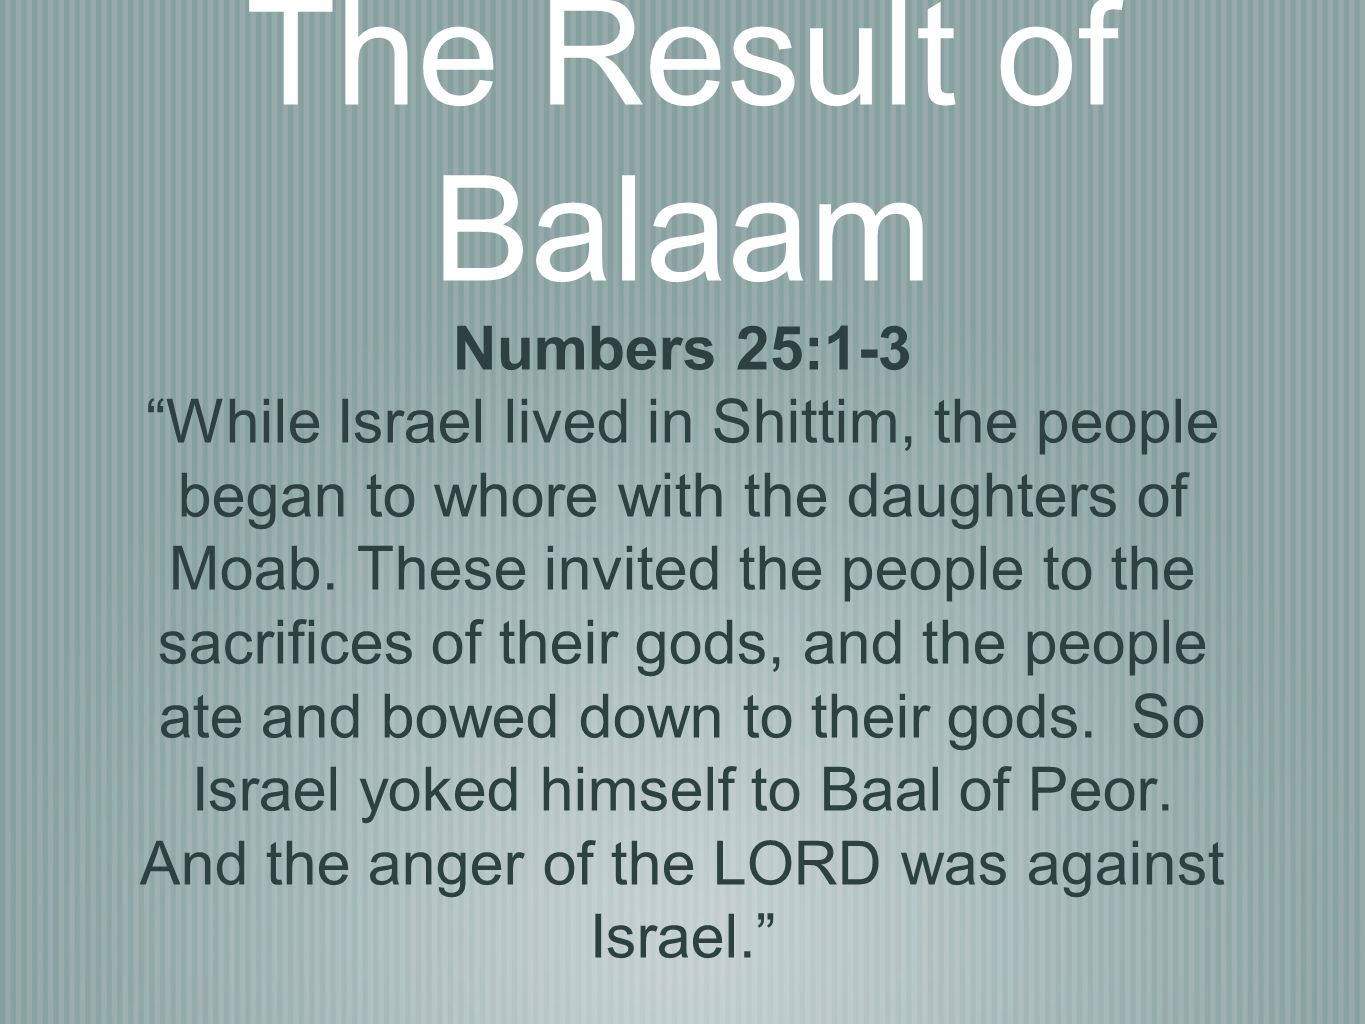 The Result of Balaam Numbers 25:1-3 While Israel lived in Shittim, the people began to whore with the daughters of Moab.